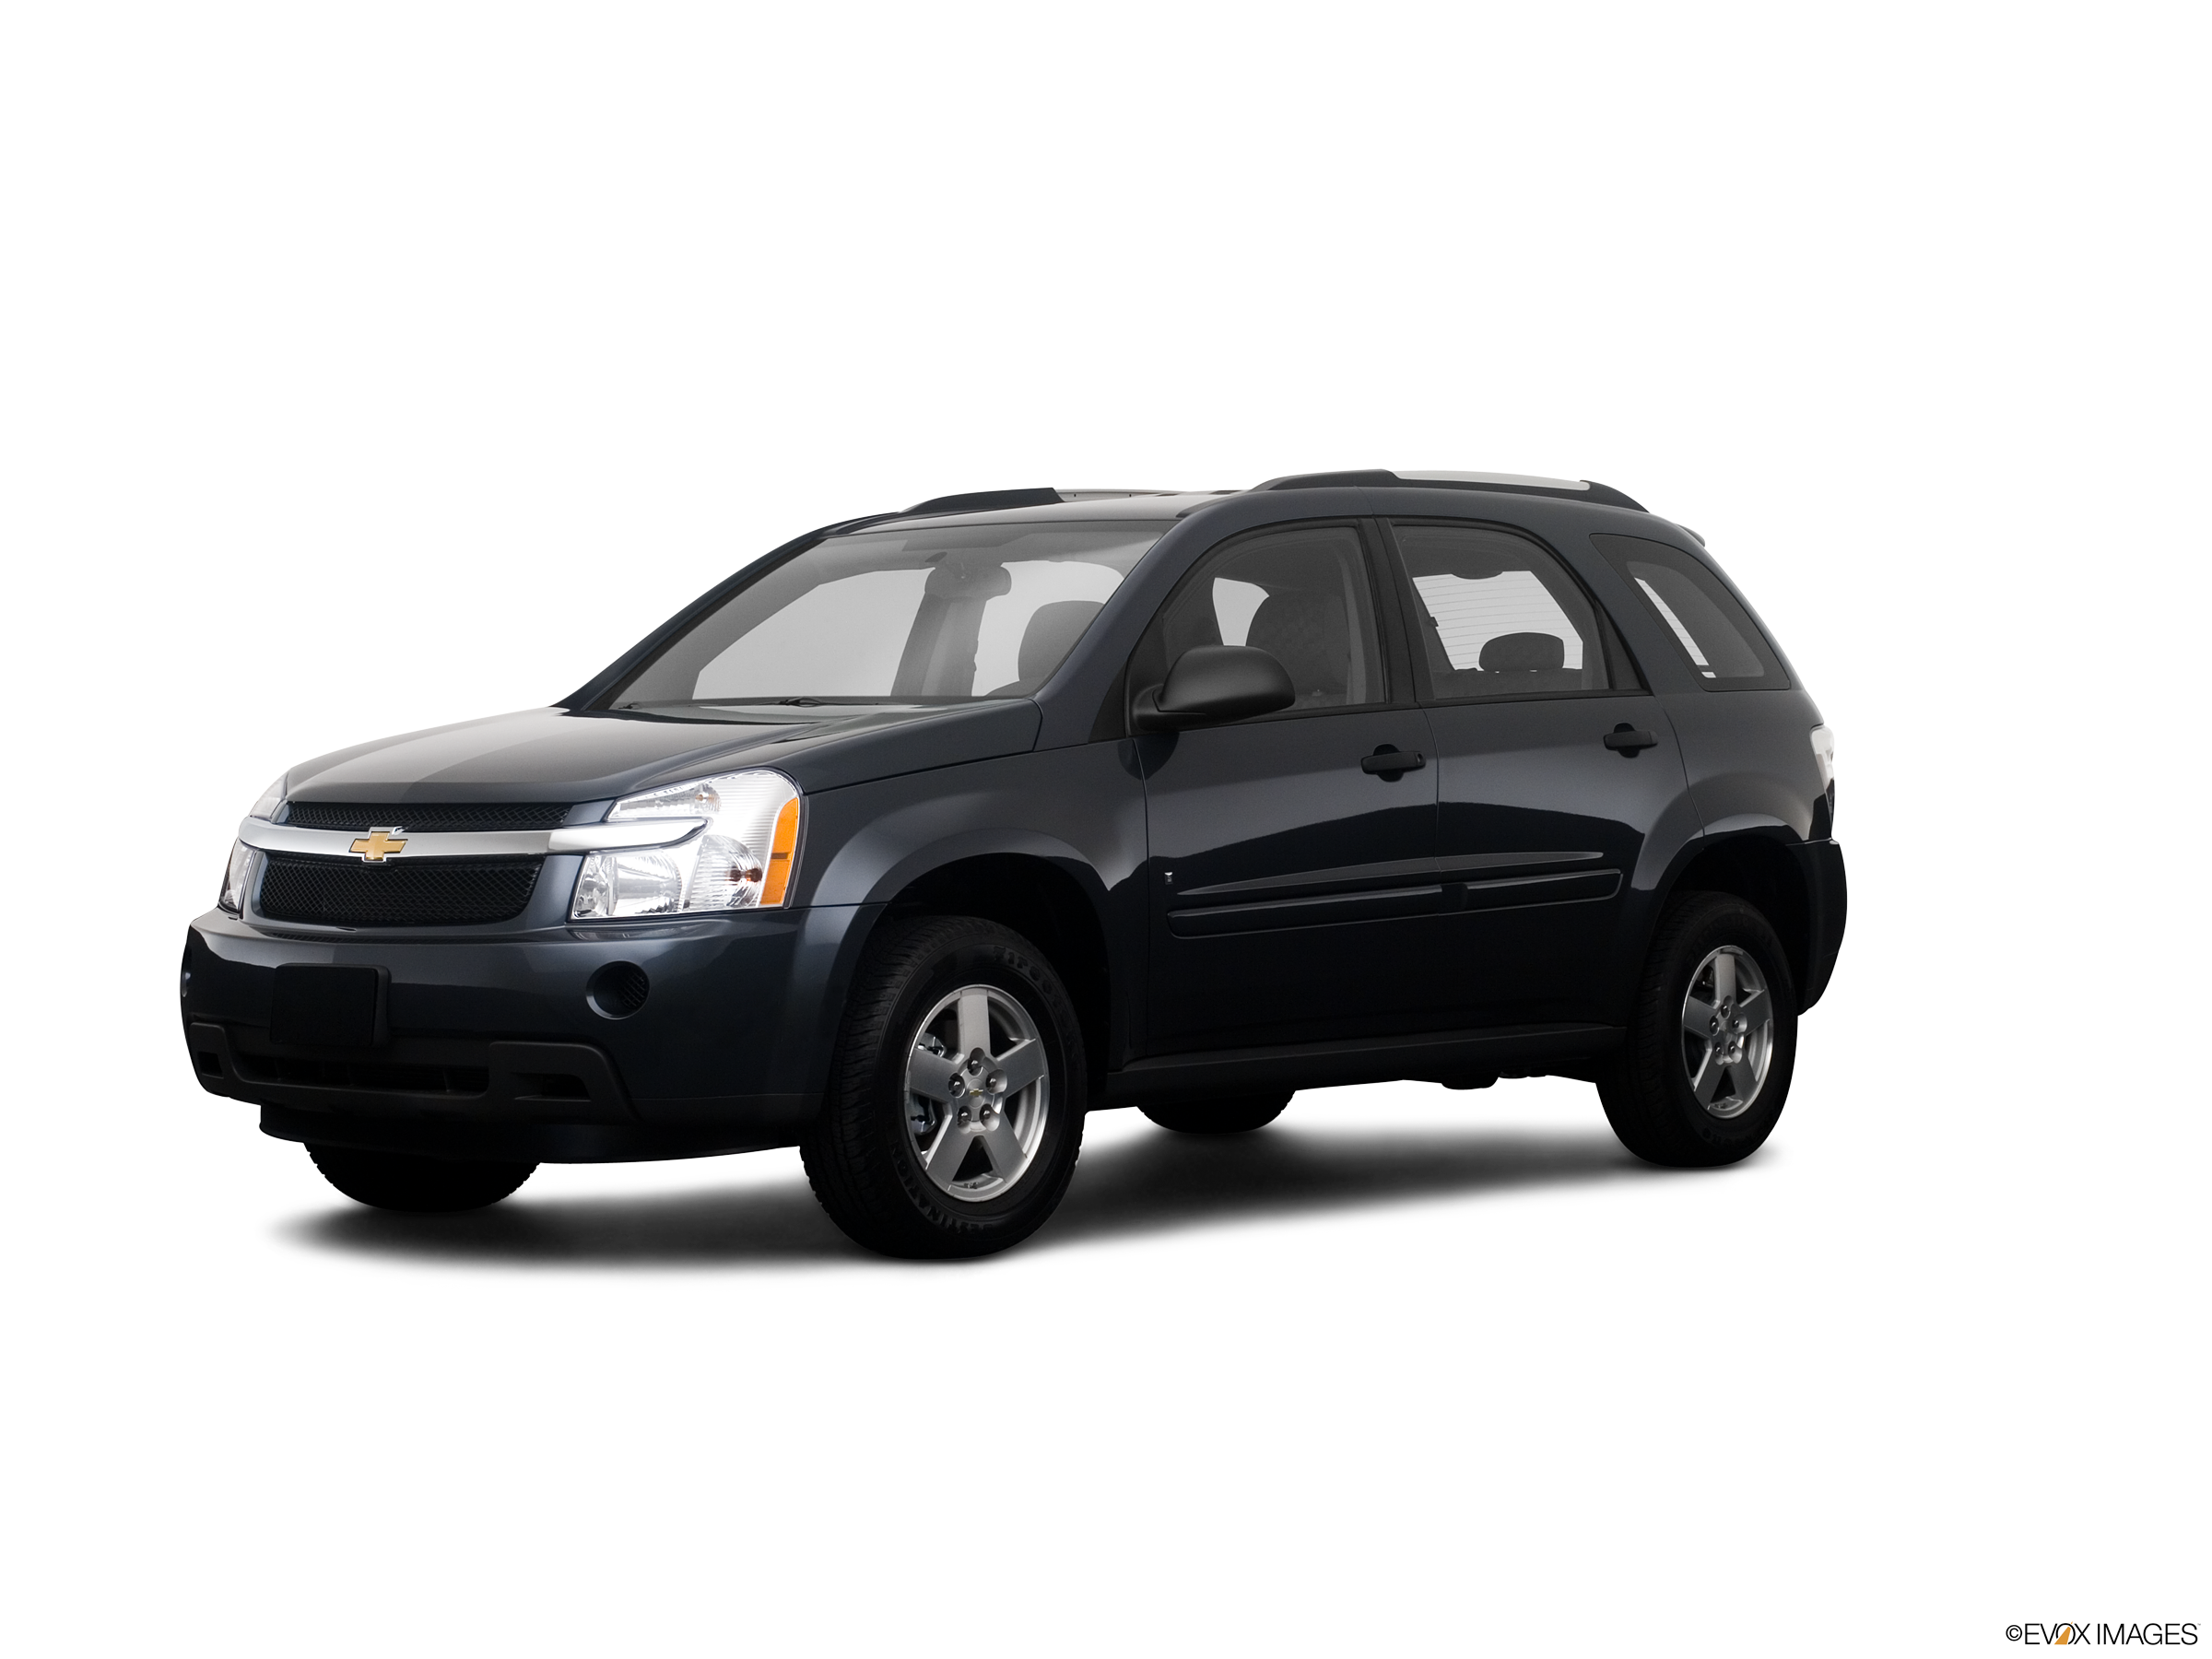 Used 2009 Chevrolet Equinox Values Cars For Sale Kelley Blue Book